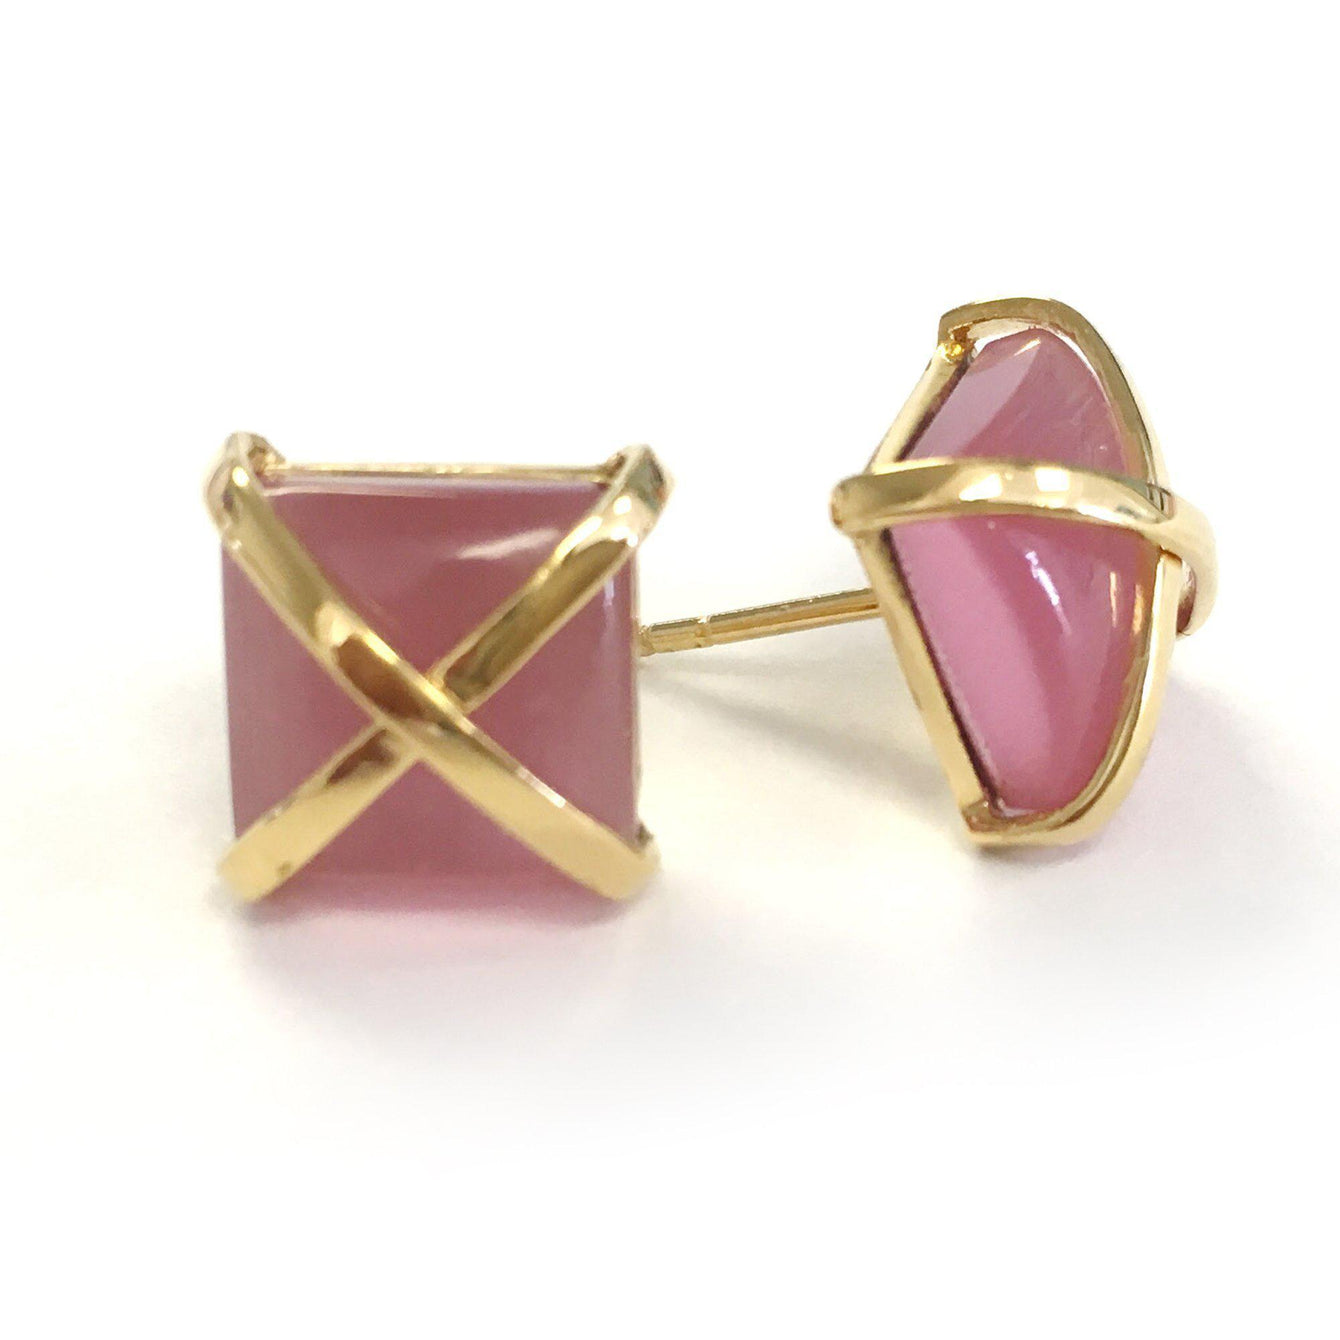 Martin 24k Gold Gemstone Criss Cross Studs-Women - Jewelry - Earrings-ADDISON WEEKS-Pink Quartz-Peccadilly